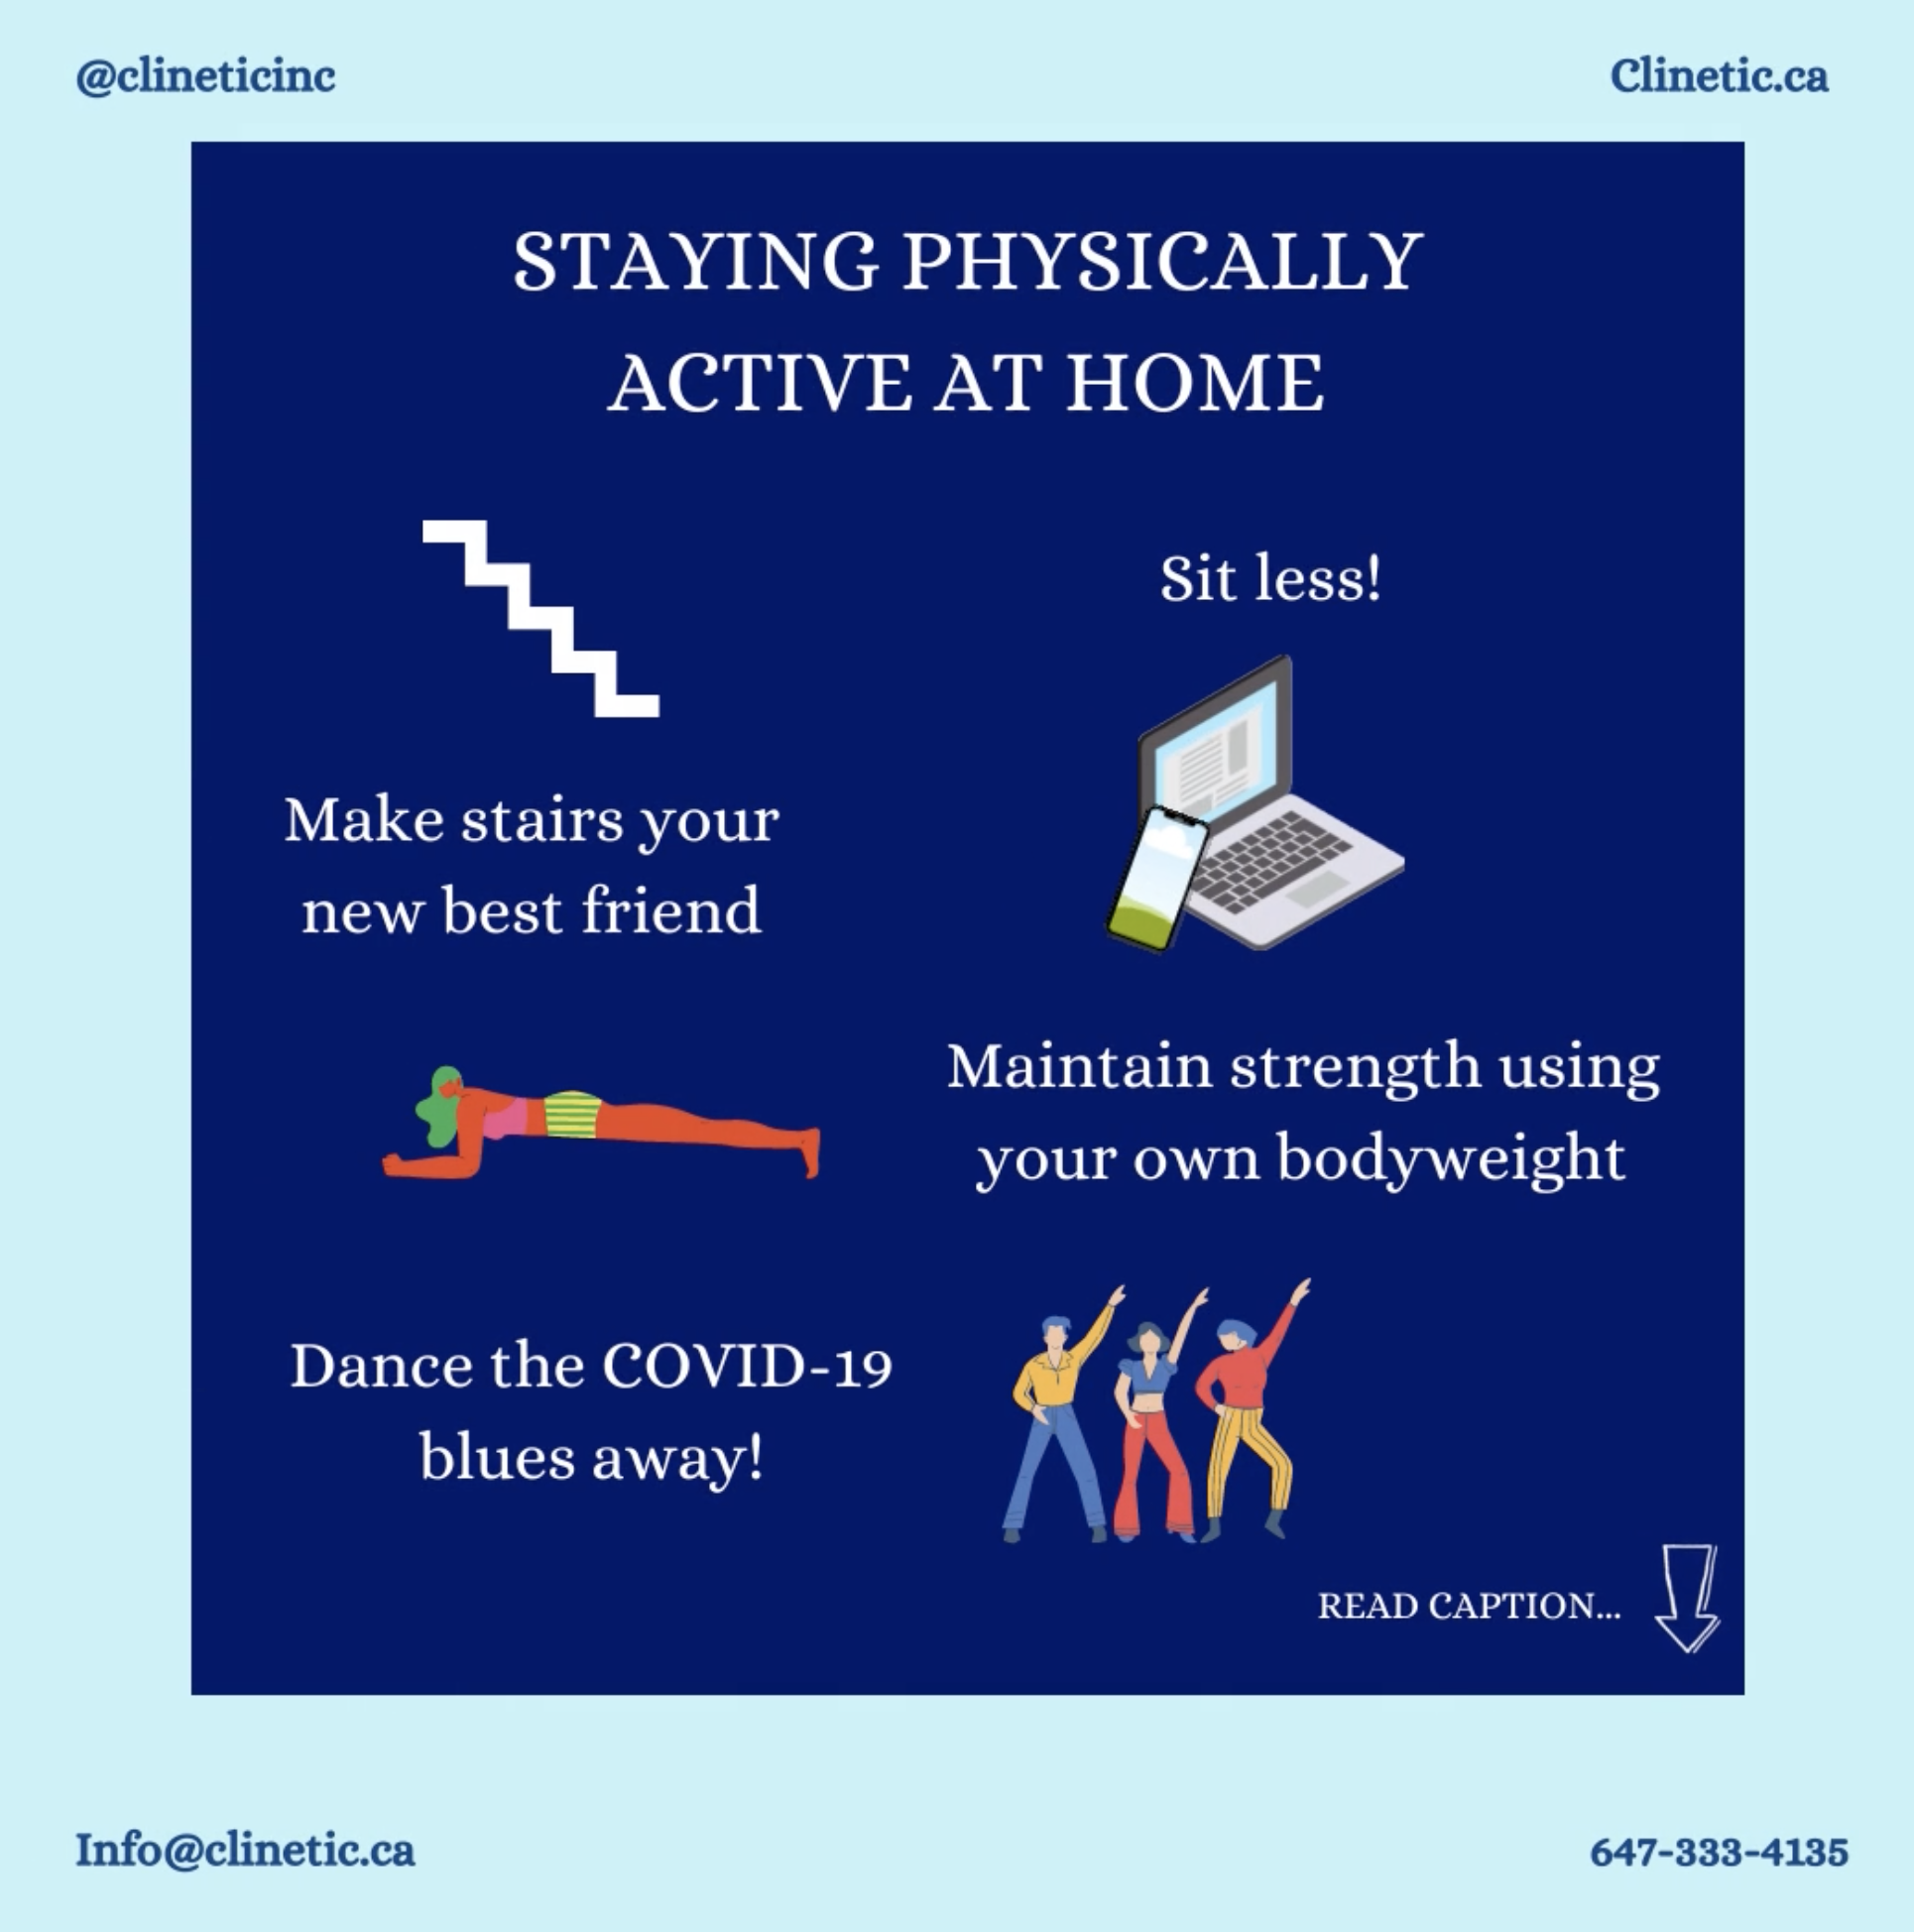 Staying physically active at home